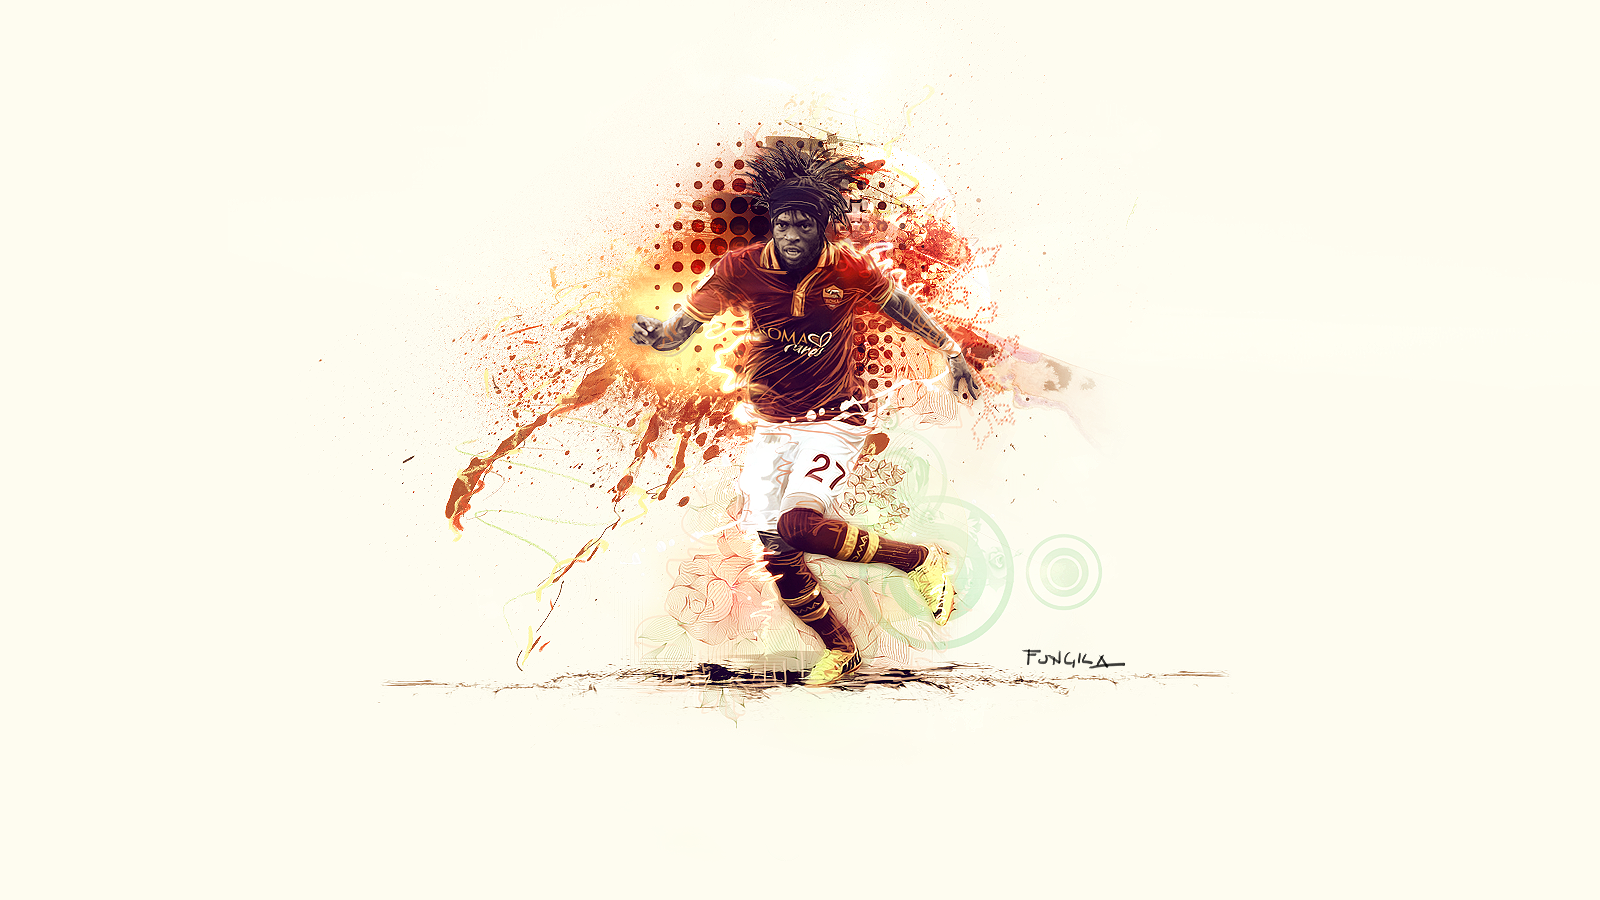 Gervinho by fungila